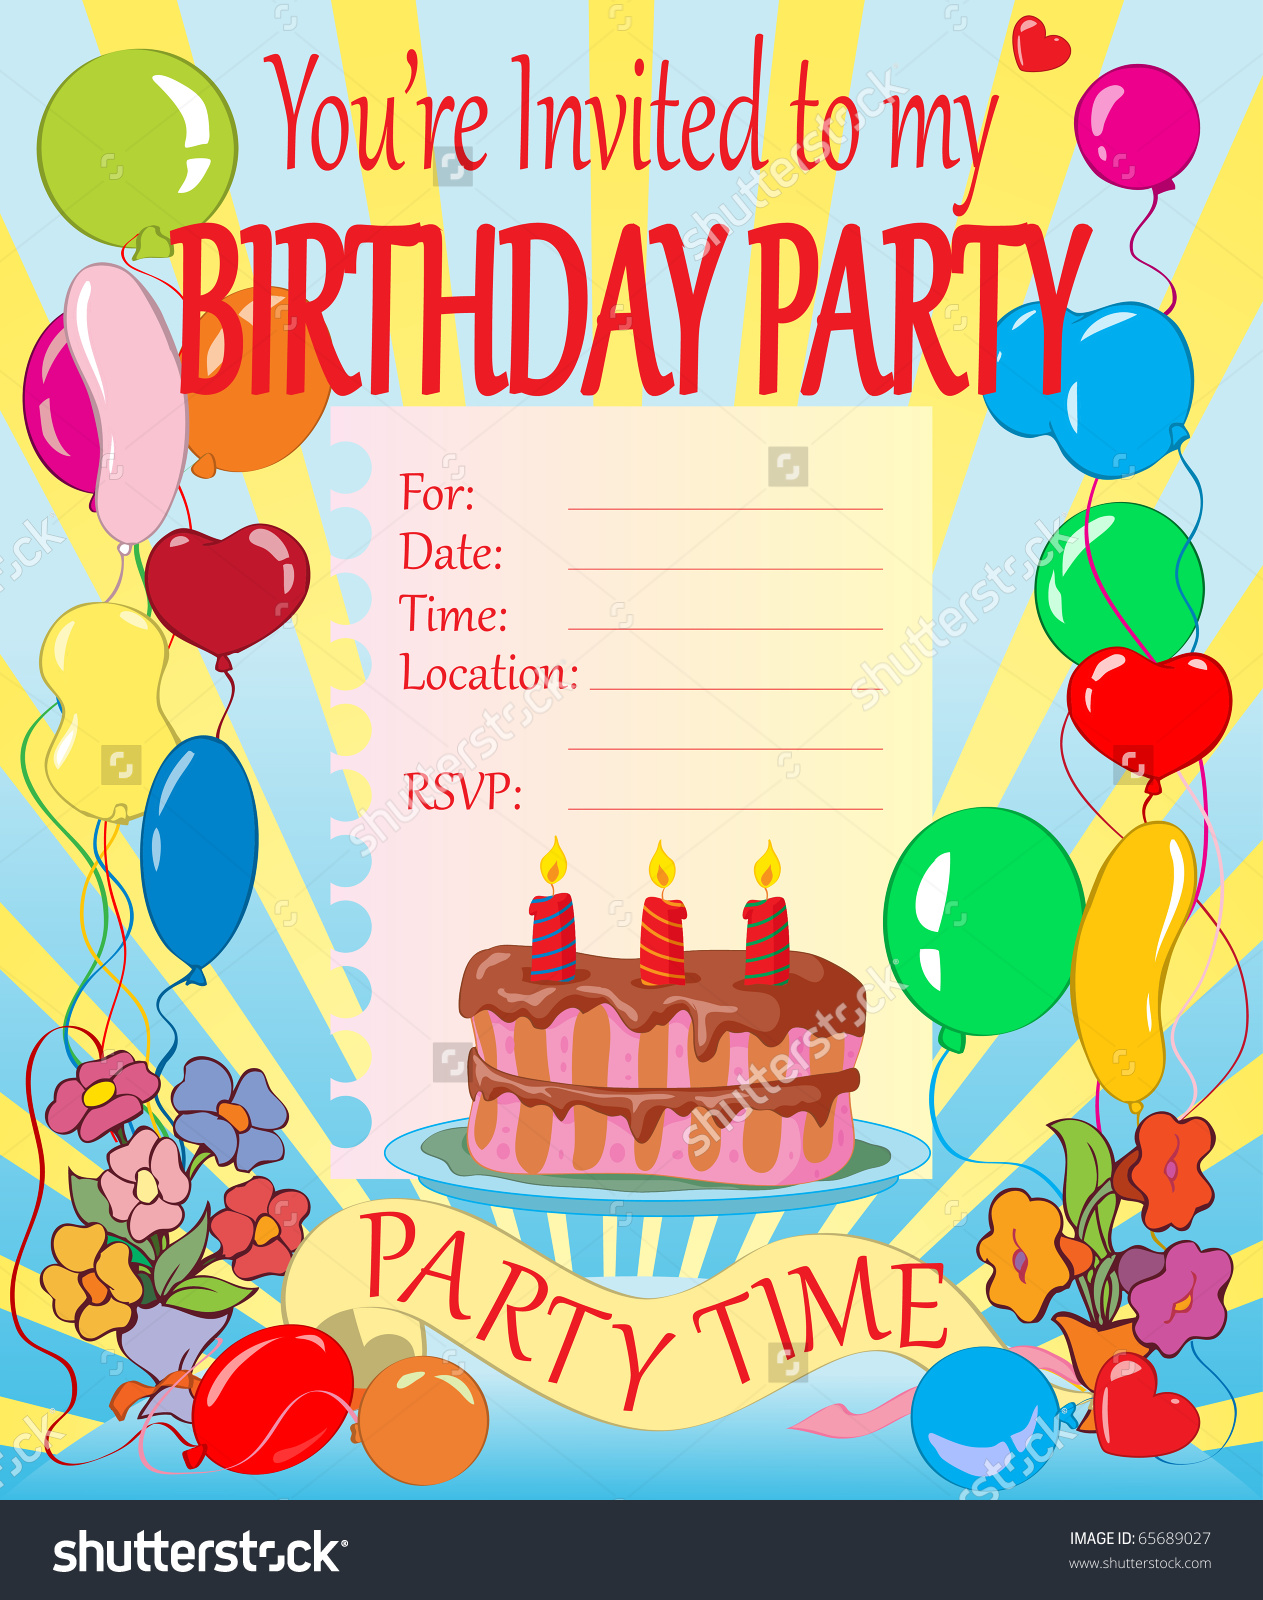 birthday invitation card design for boy ; birthday-party-invitation-card-how-to-make-your-own-Birthday-invitations-using-word-8